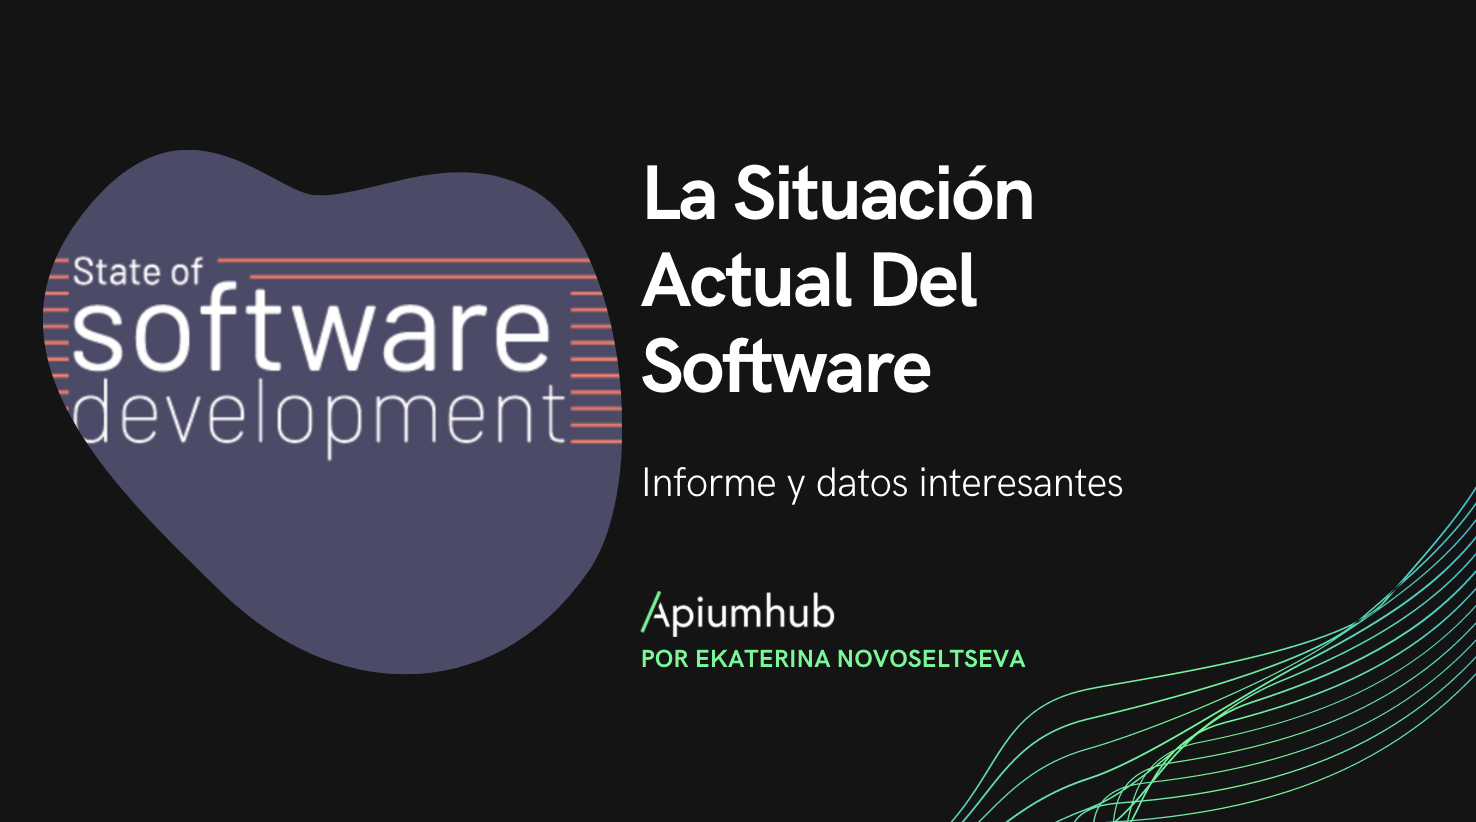 situacion actual del software